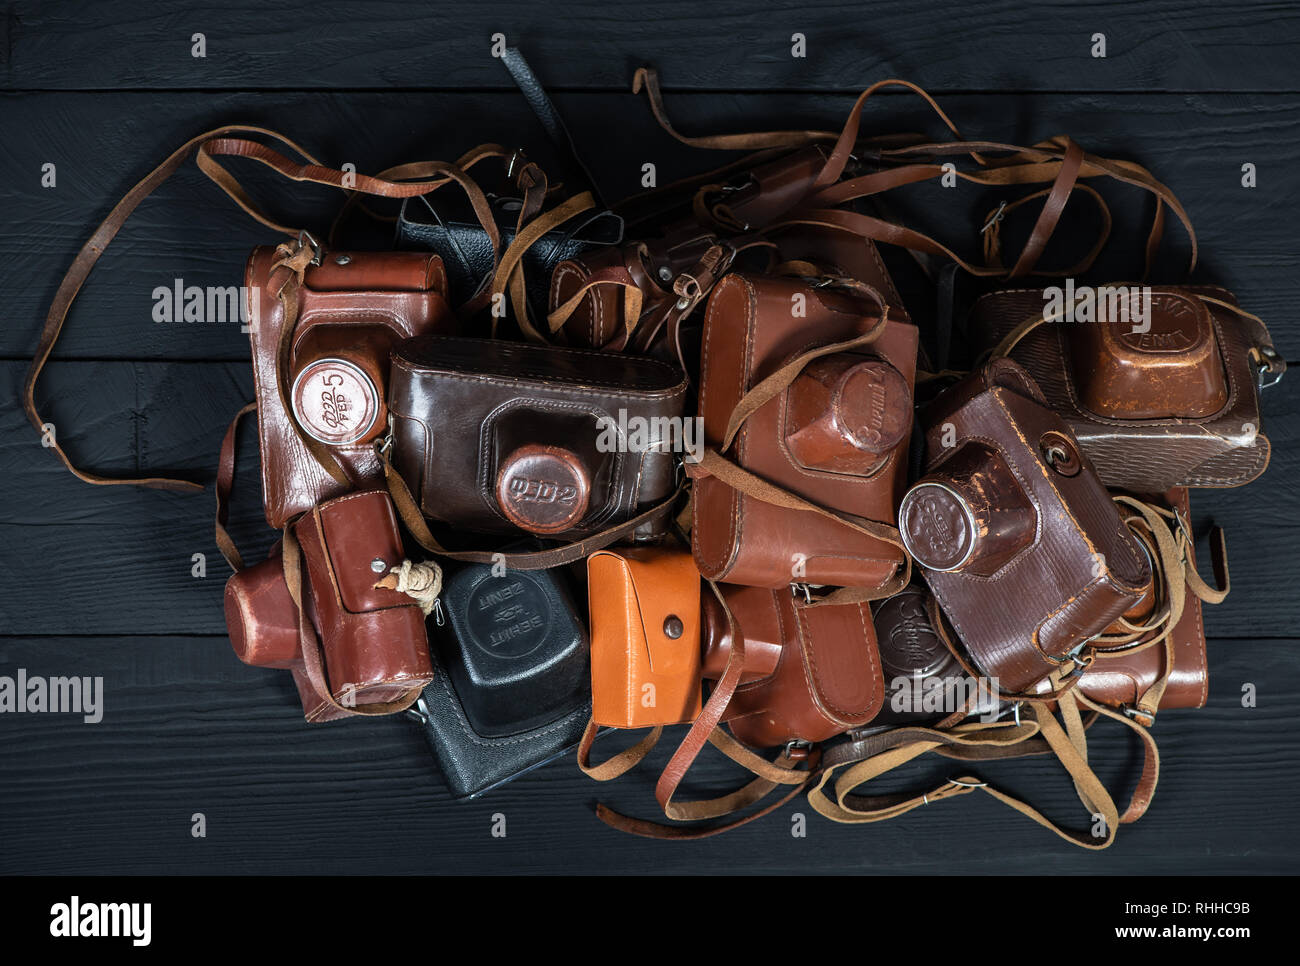 Drohobych, Ukraine - 02 February, 2019: Heap of 35mm retro cameras in leather covers on black, top view Stock Photo